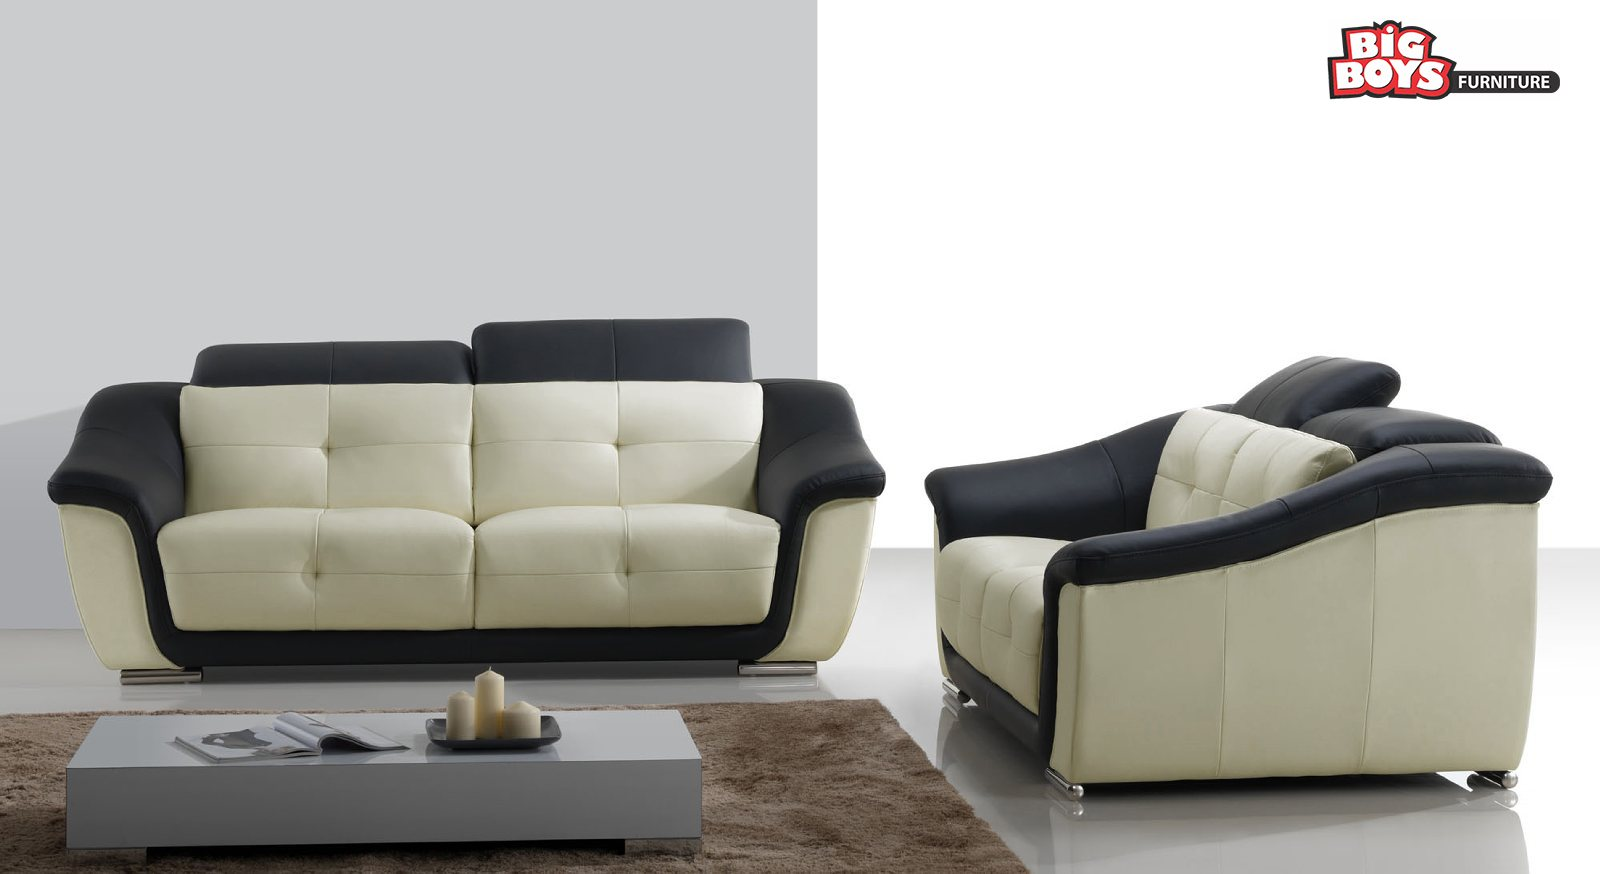 This sofa set make your living room extremely beautiful